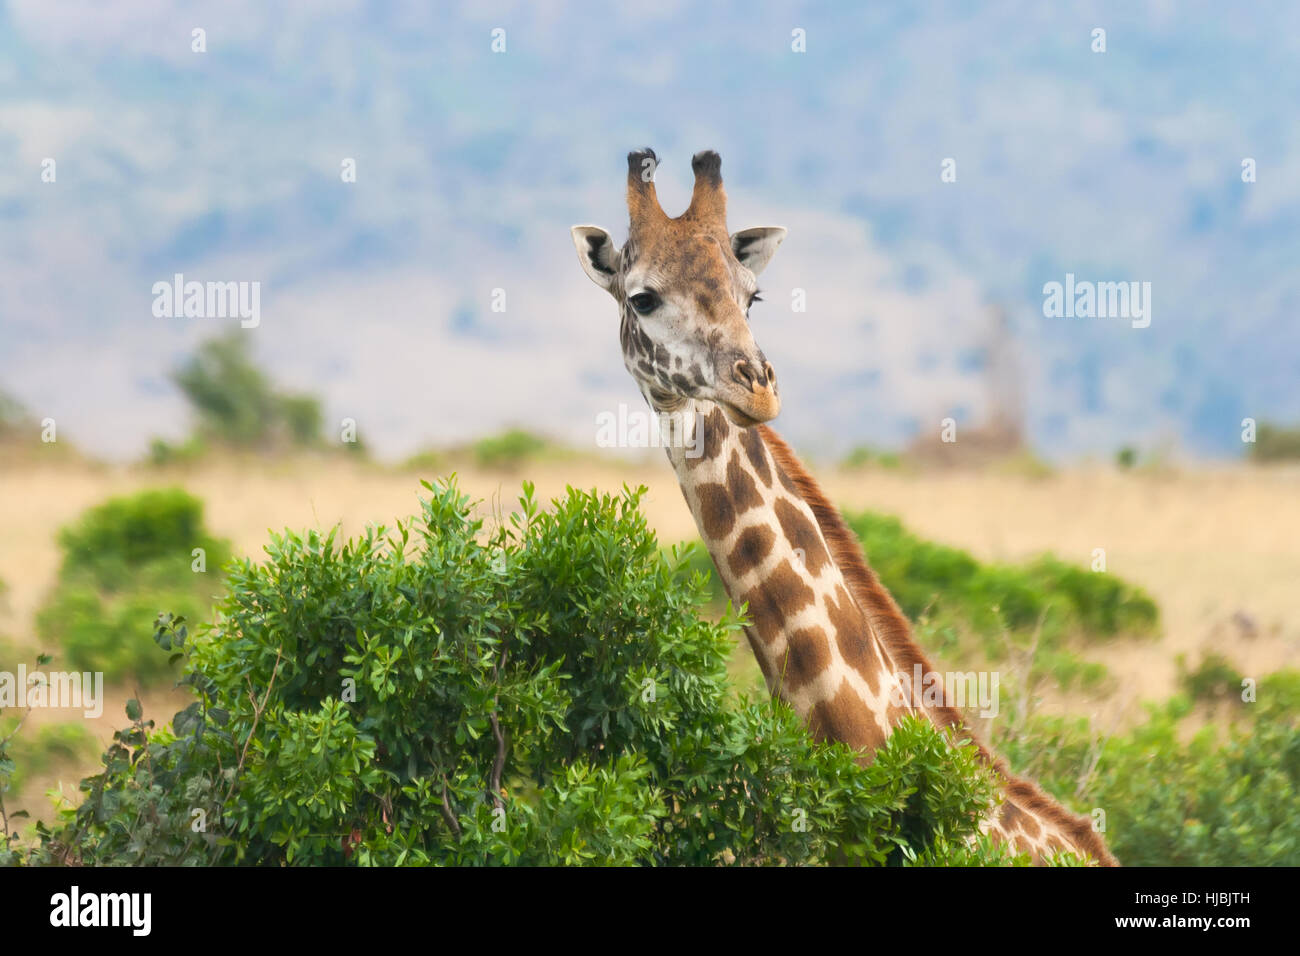 Close view of giraffe at Masai Mara National Reserve, Kenya - Stock Image